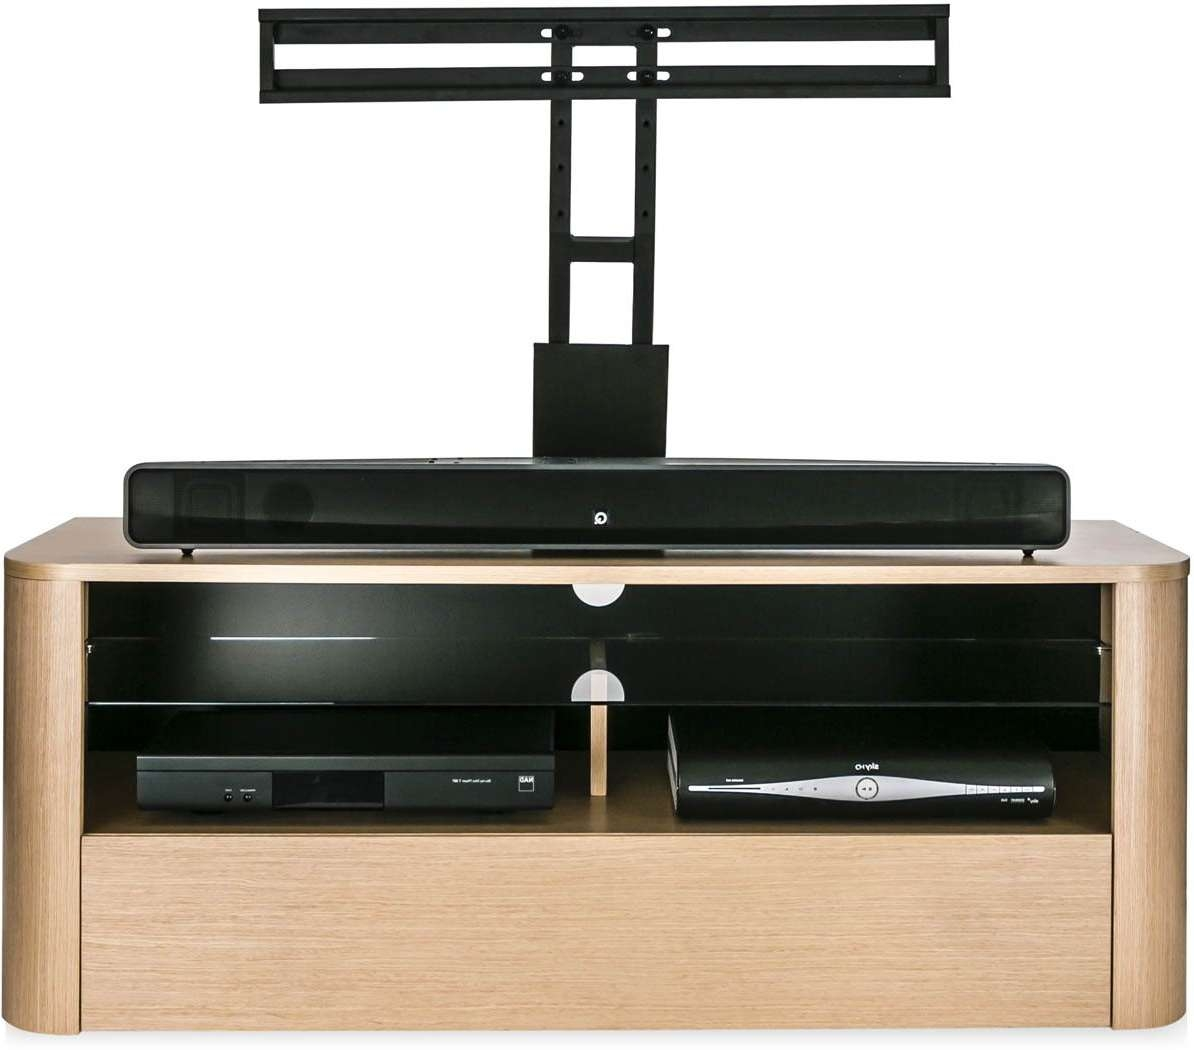 Alphason Adh1260 Lo+Bkt Tv Stands Intended For Tv Stands Cantilever (View 1 of 15)